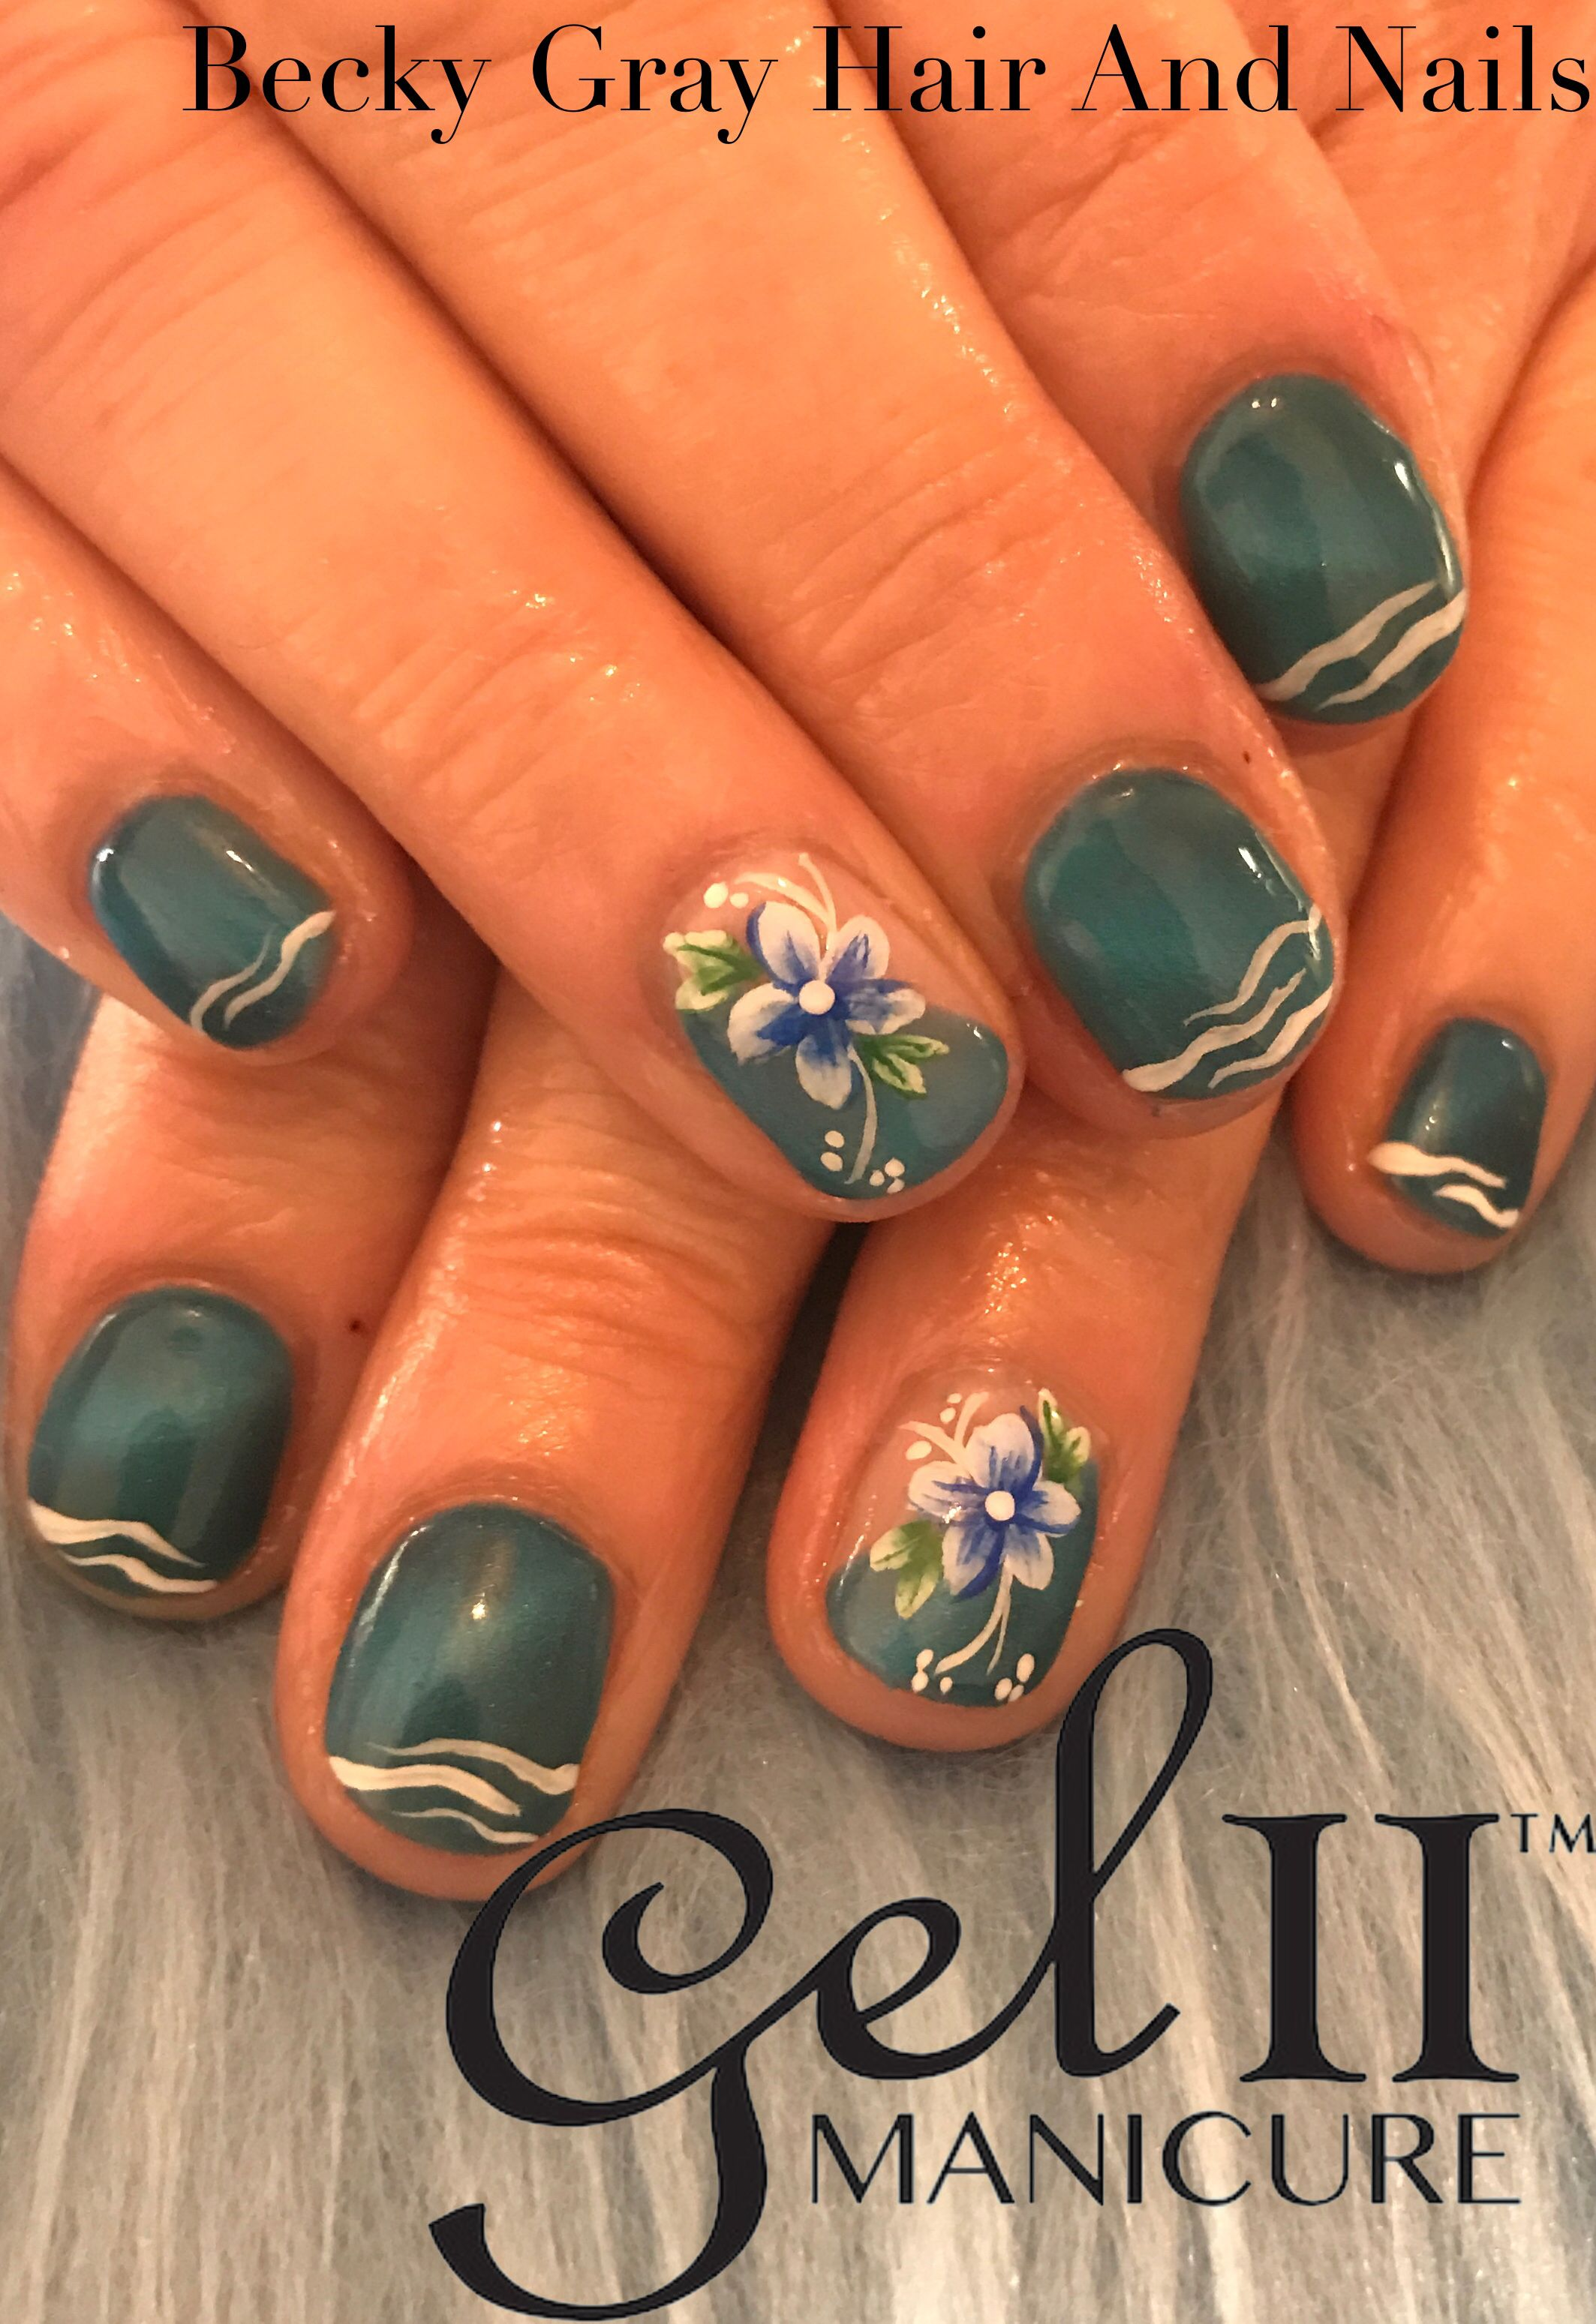 Gel ii manicure sassy sapphire with hand painted nail art #gelii ...